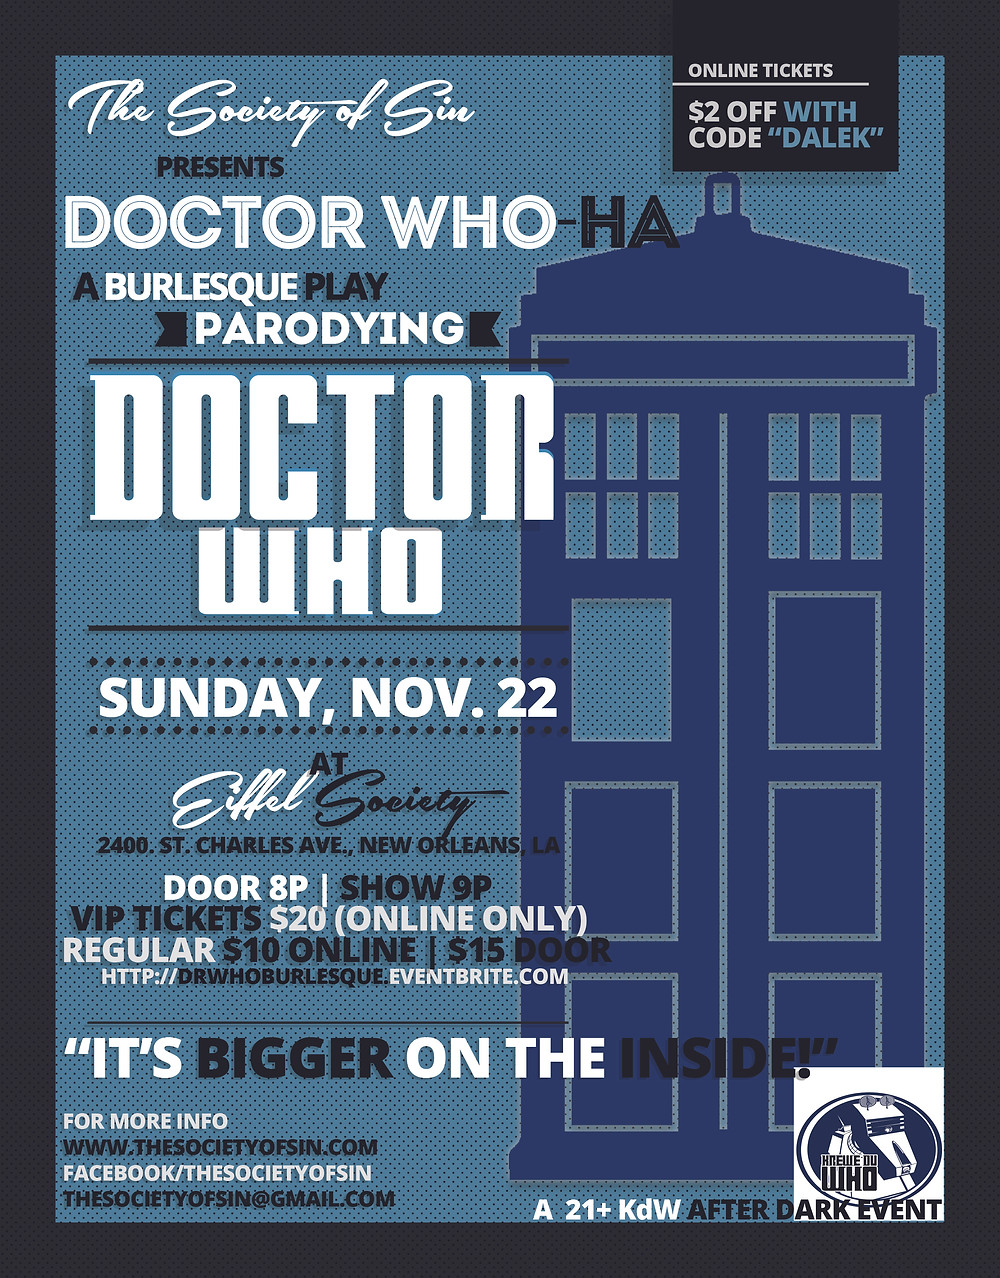 Doctor Who-Ha Nerdlesque New Orleans Burlesque